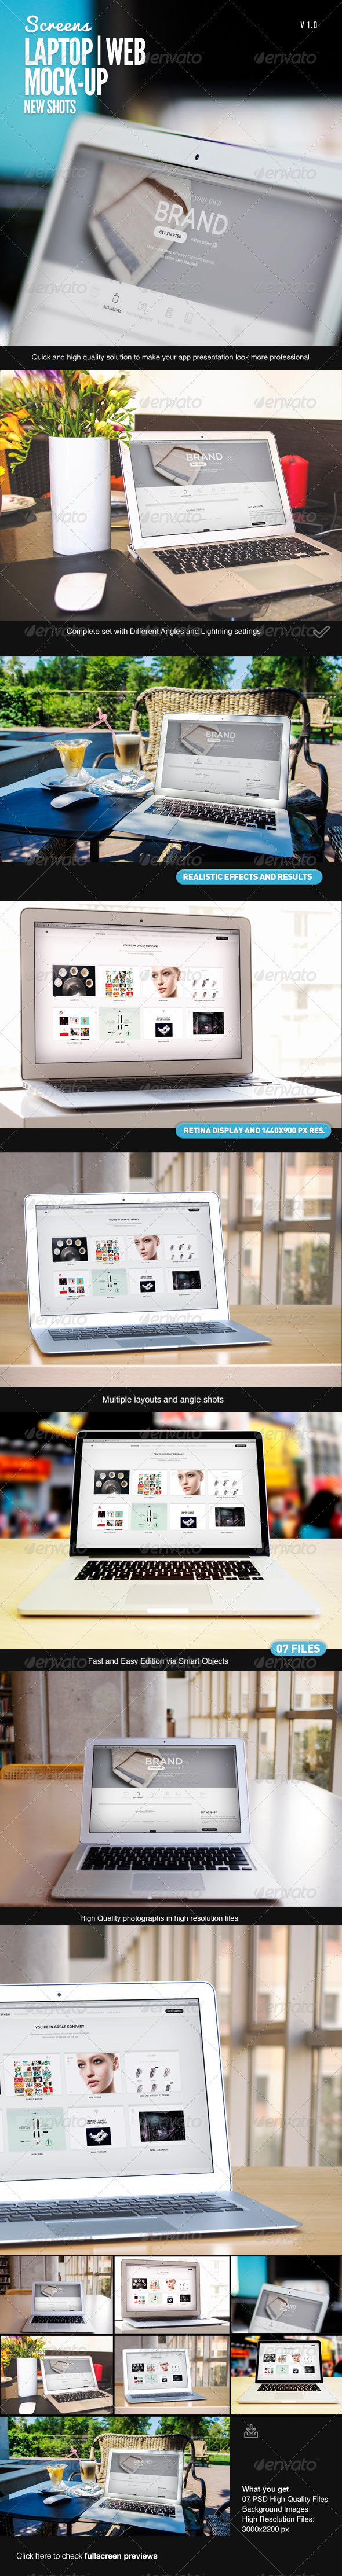 GraphicRiver Laptop Web App Mock-Up 7576516